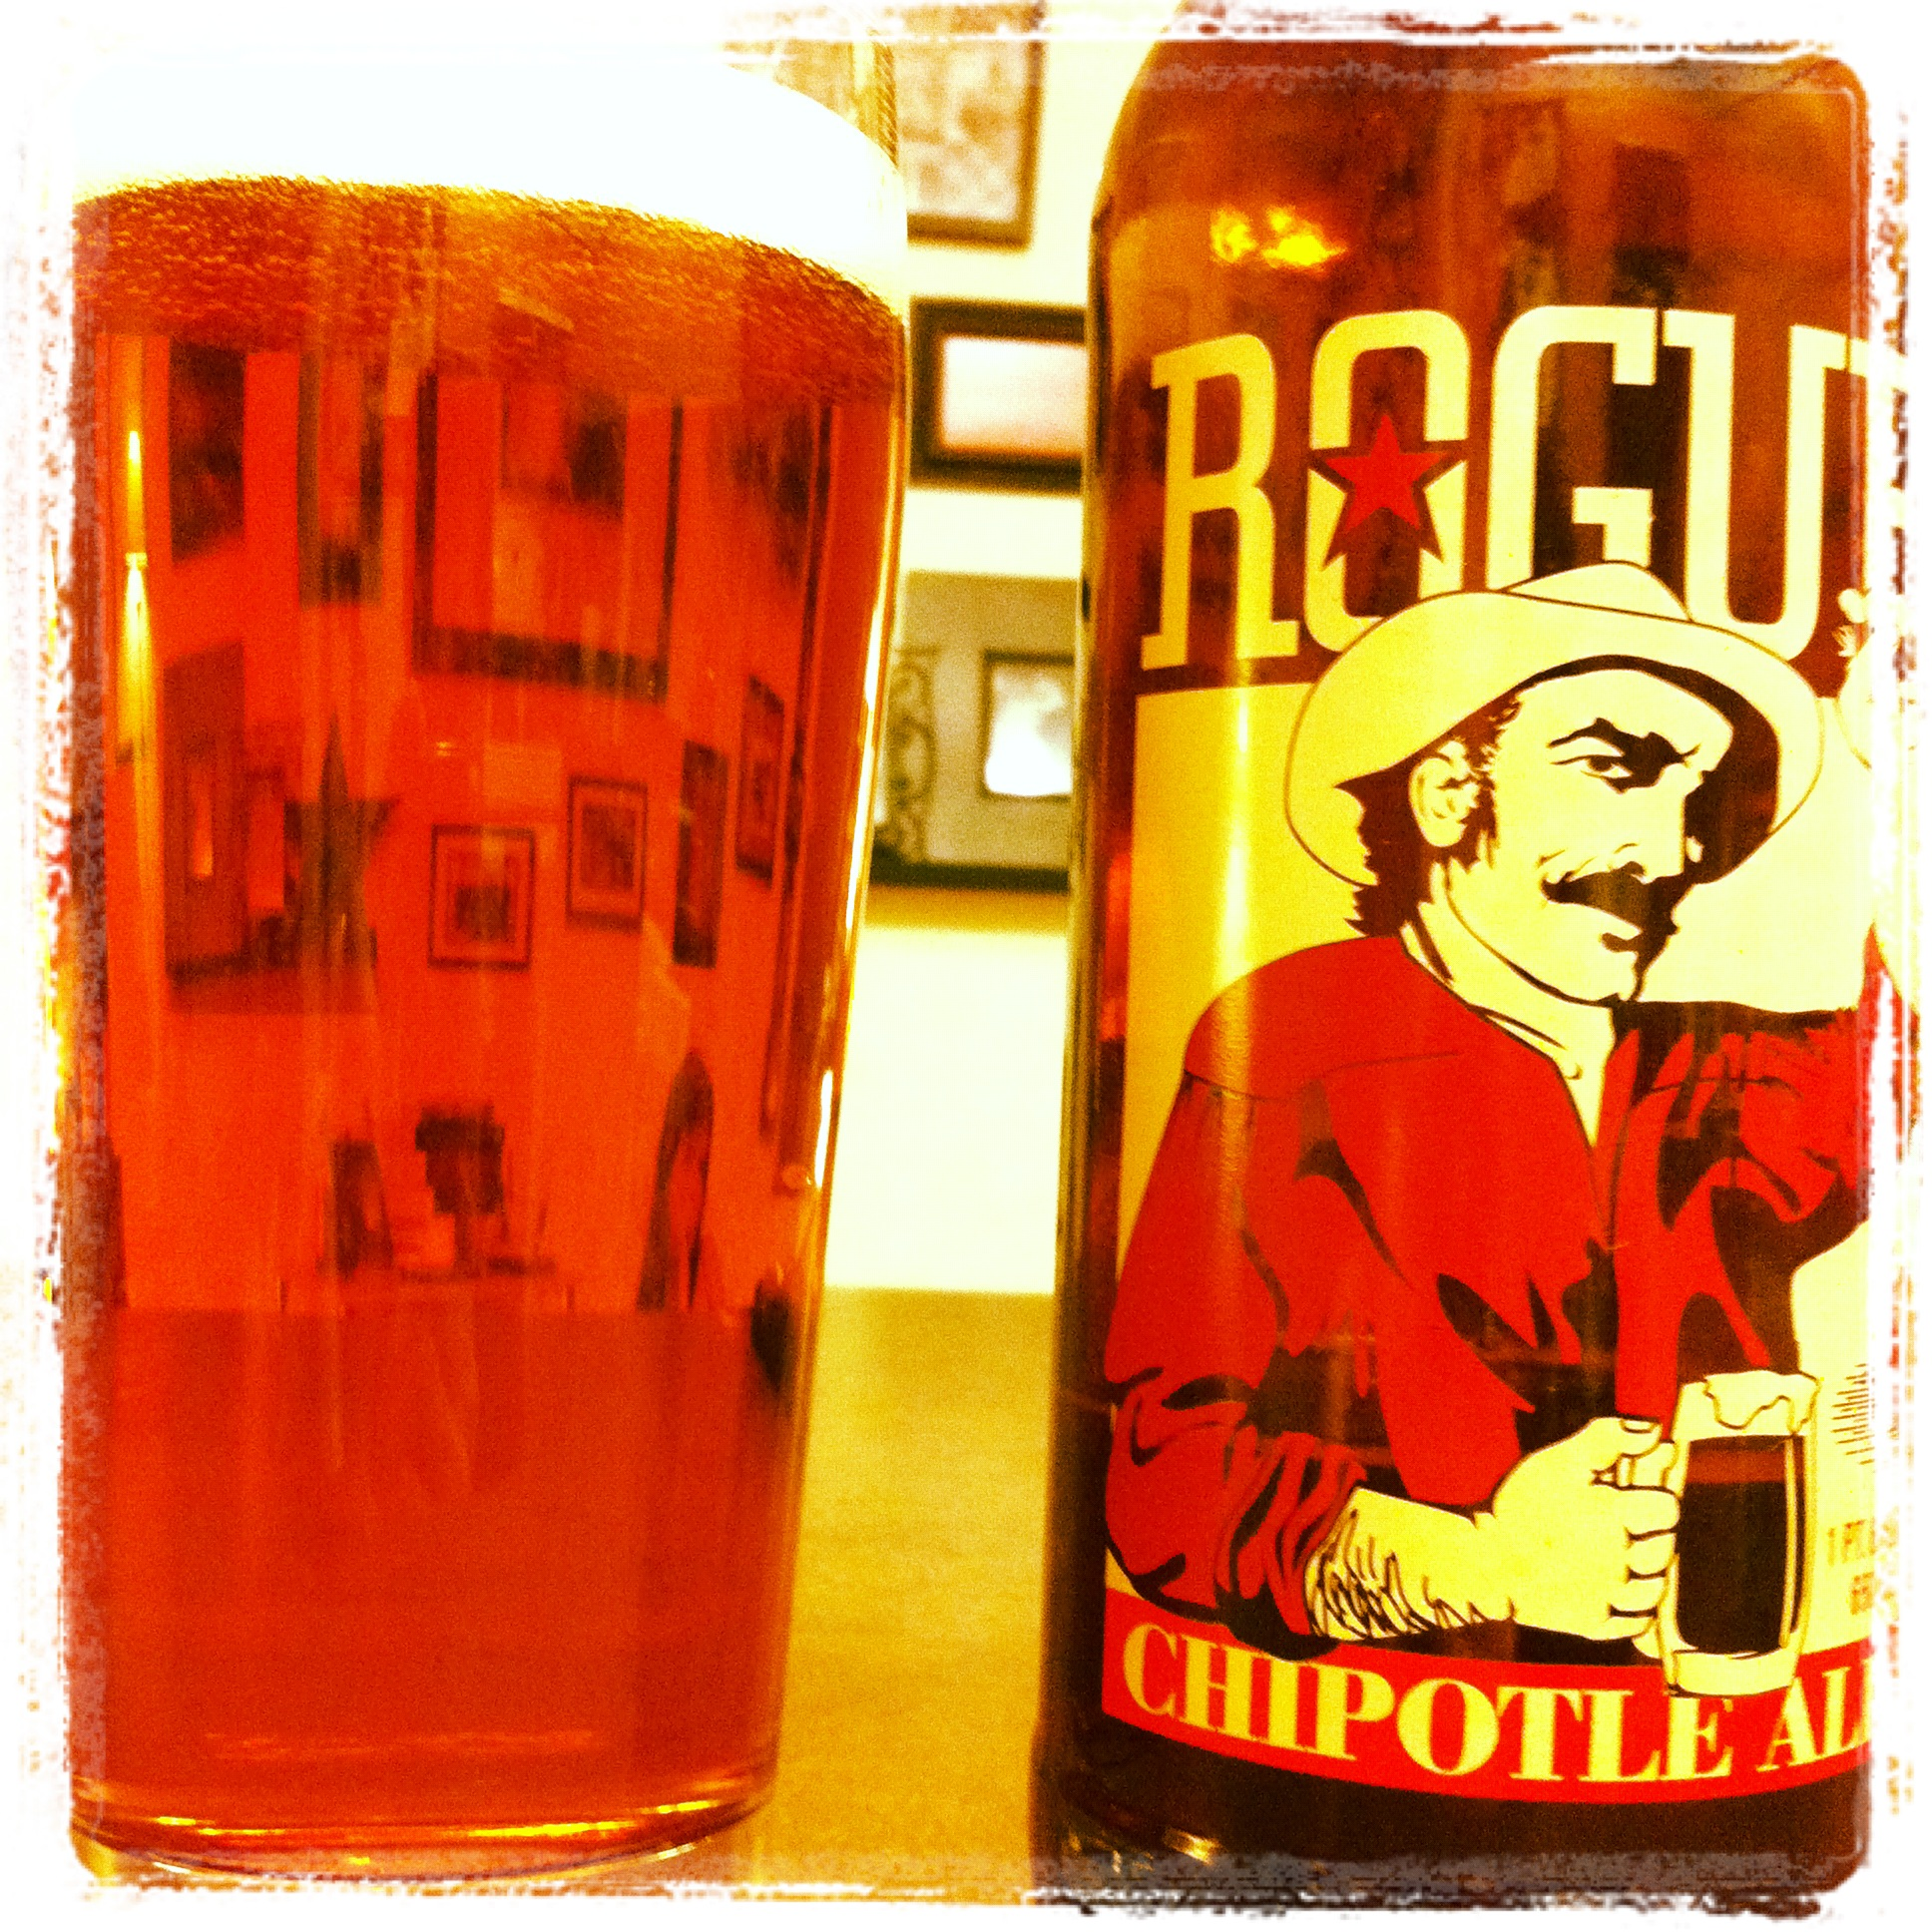 OREGON: Rogue Brewery's Chipotle Ale – Guest Post by Matt Anderson